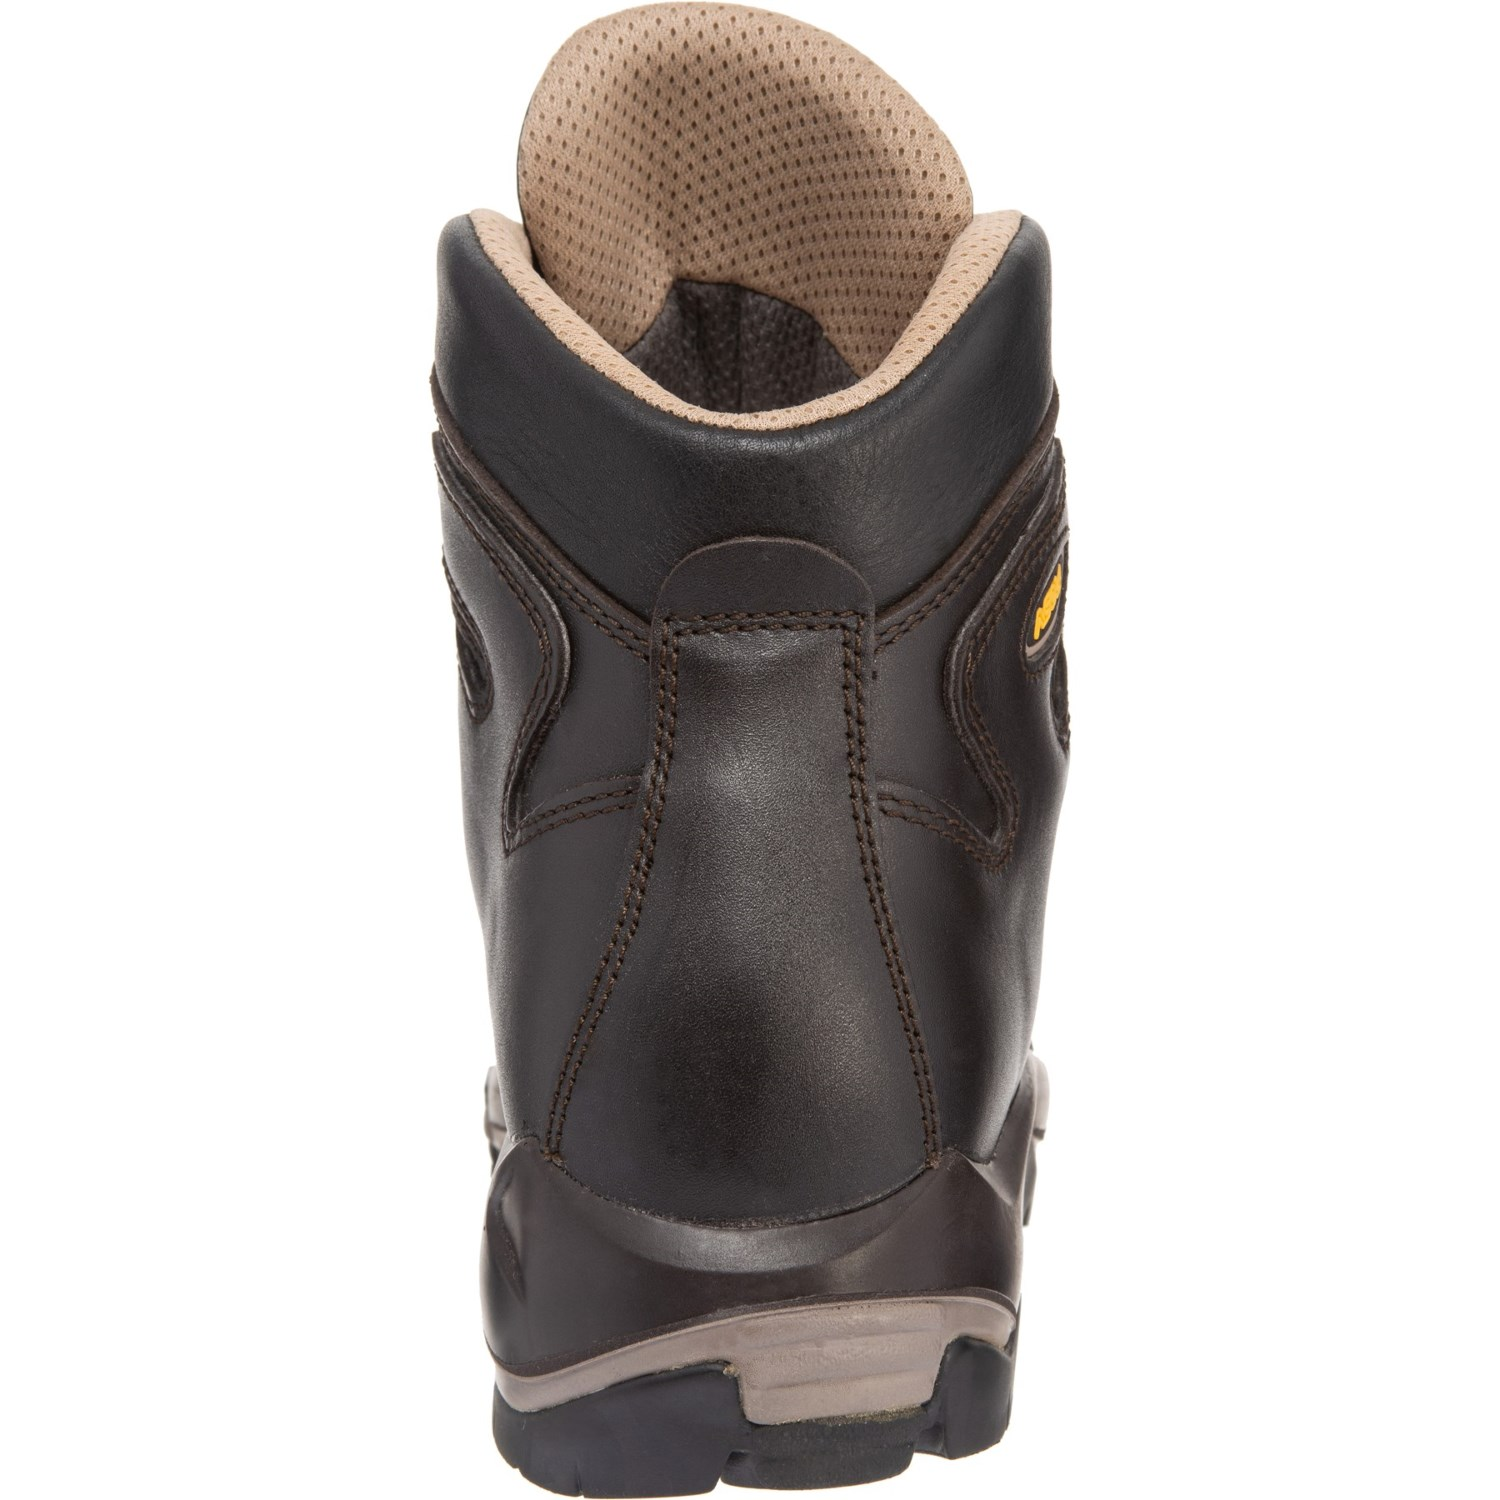 6f540f172 Asolo Made in Europe TPS 535 V Backpacking Boots (For Women) - Save 25%